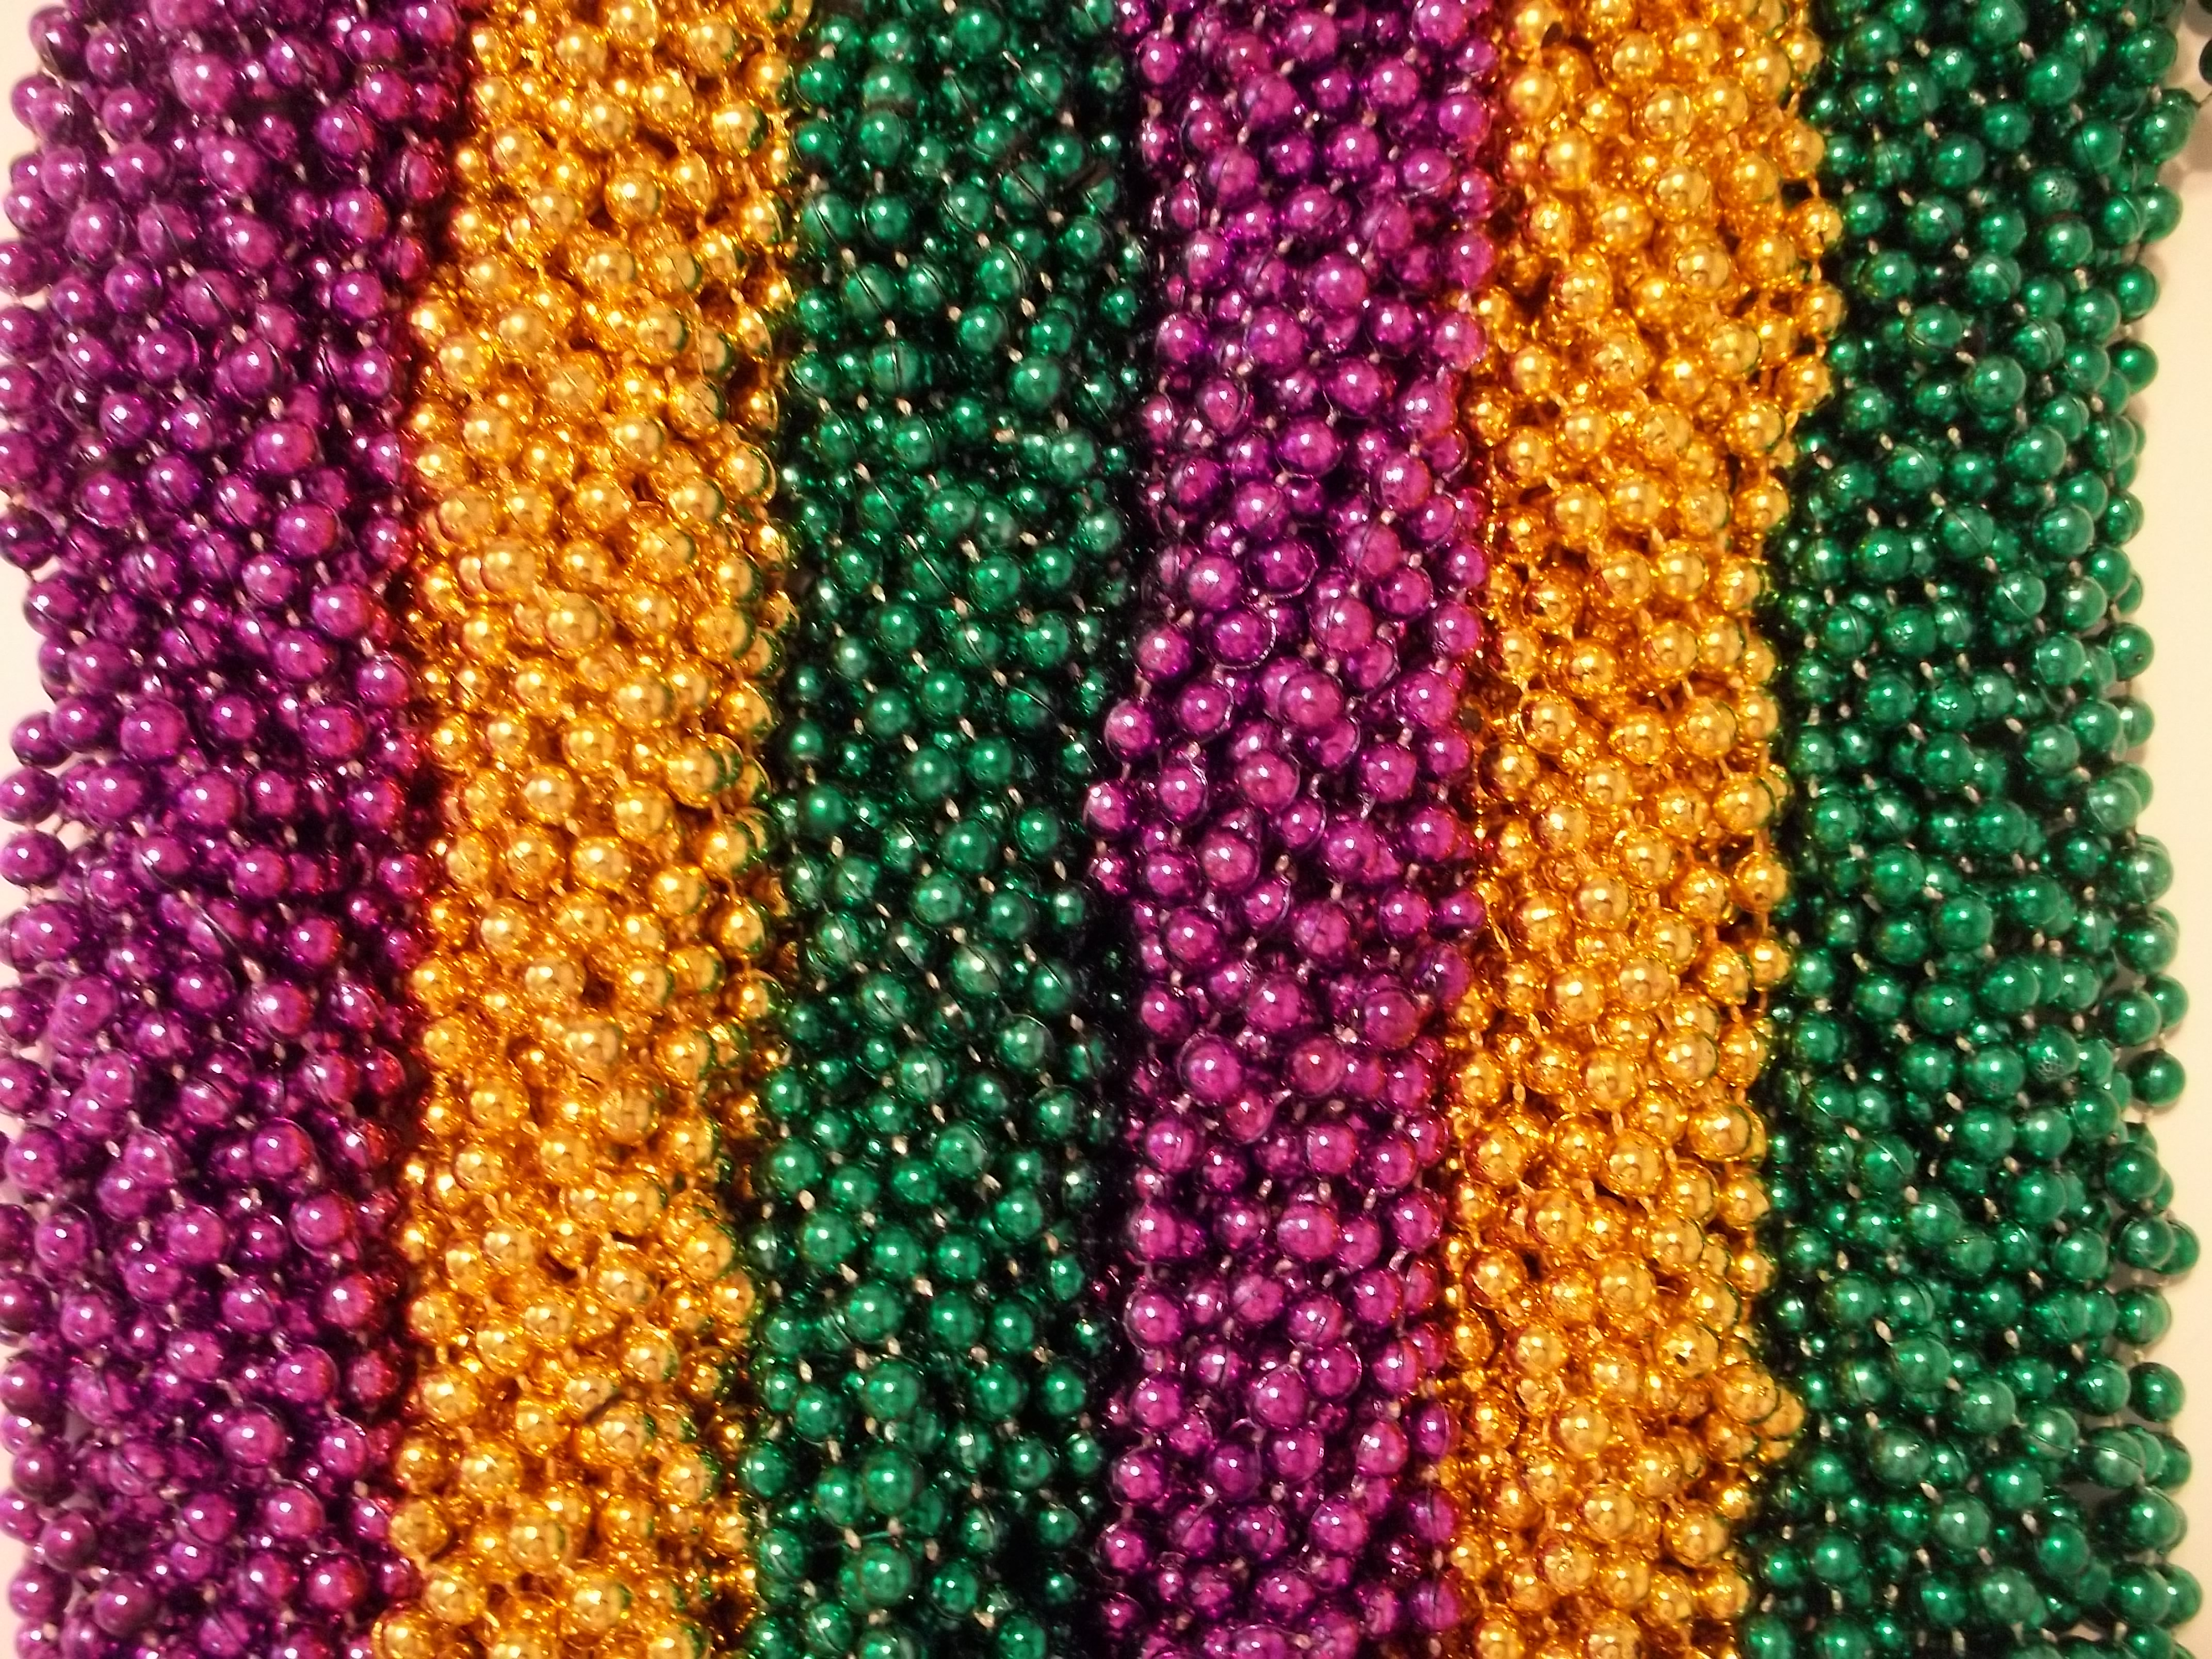 beads-halloween-etc-9-.jpg